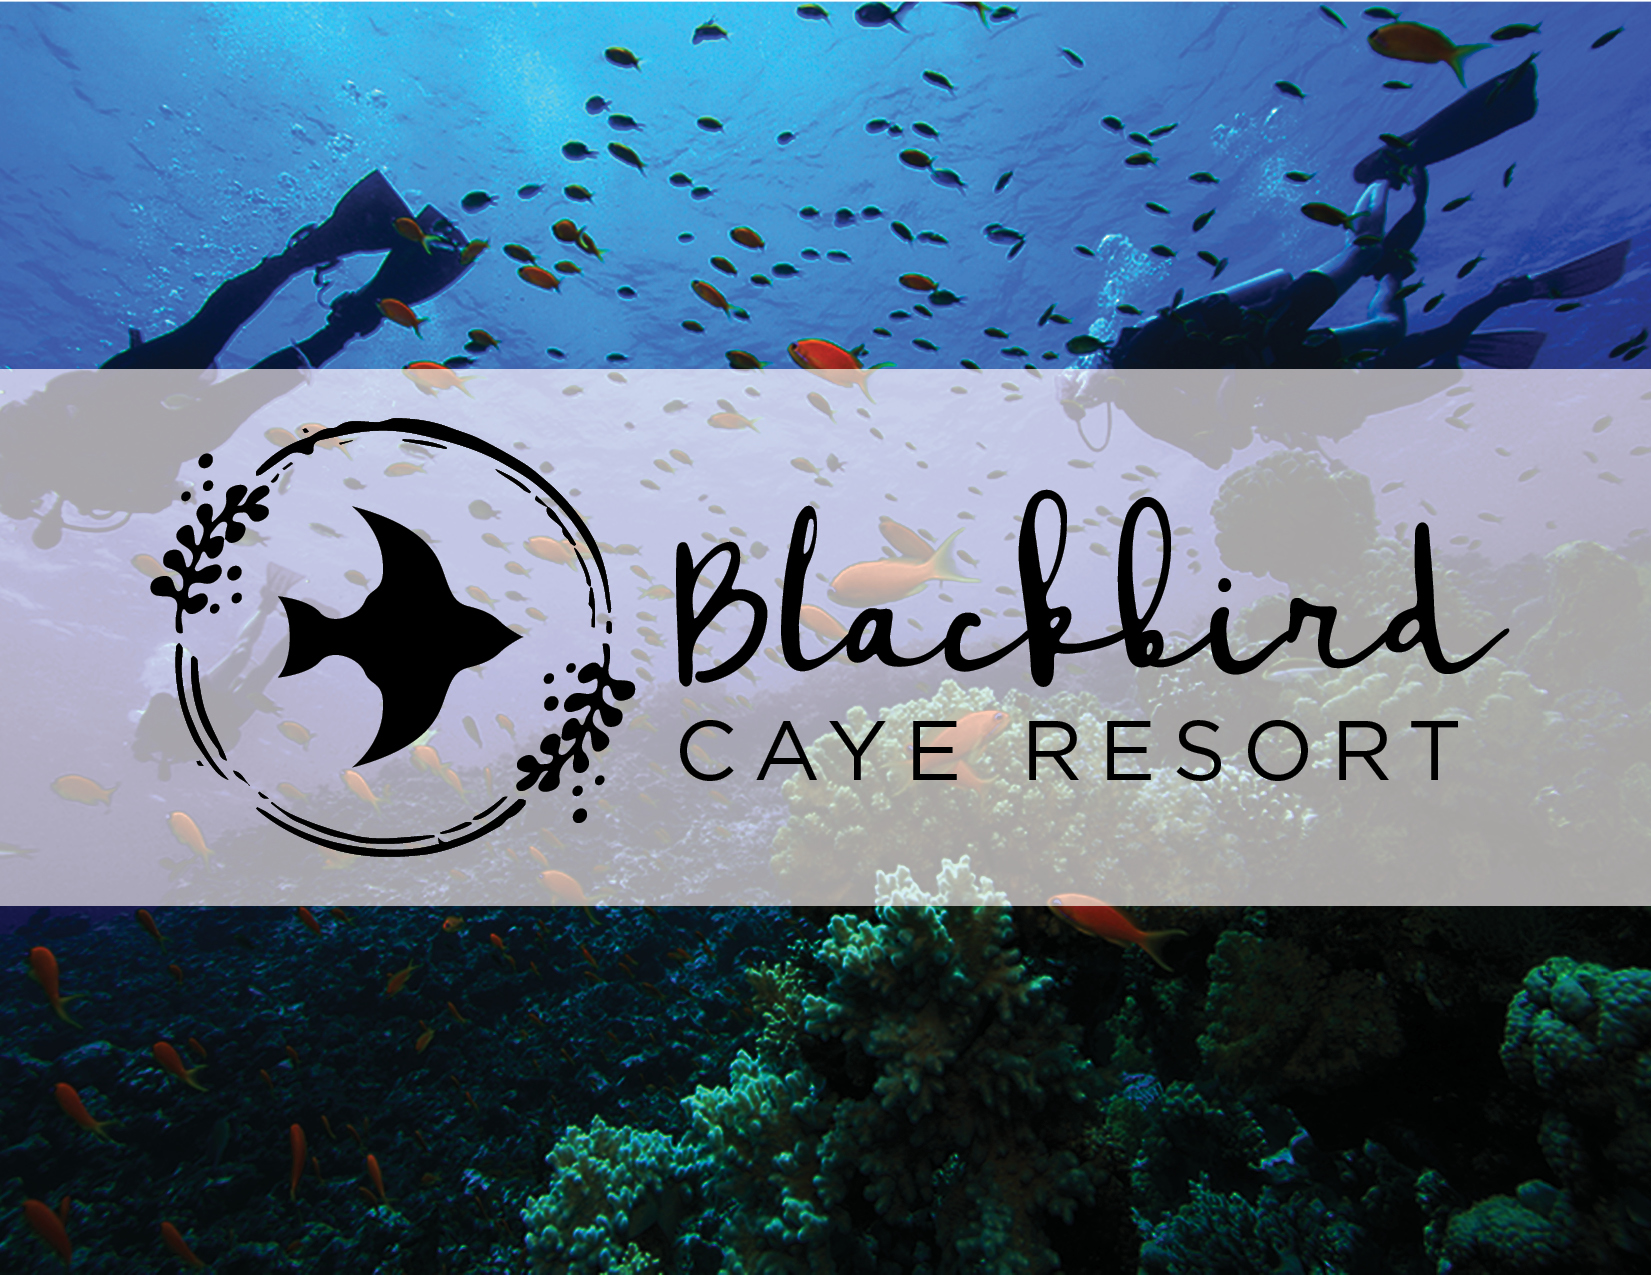 Blackbird Caye Resort - Destination Branding